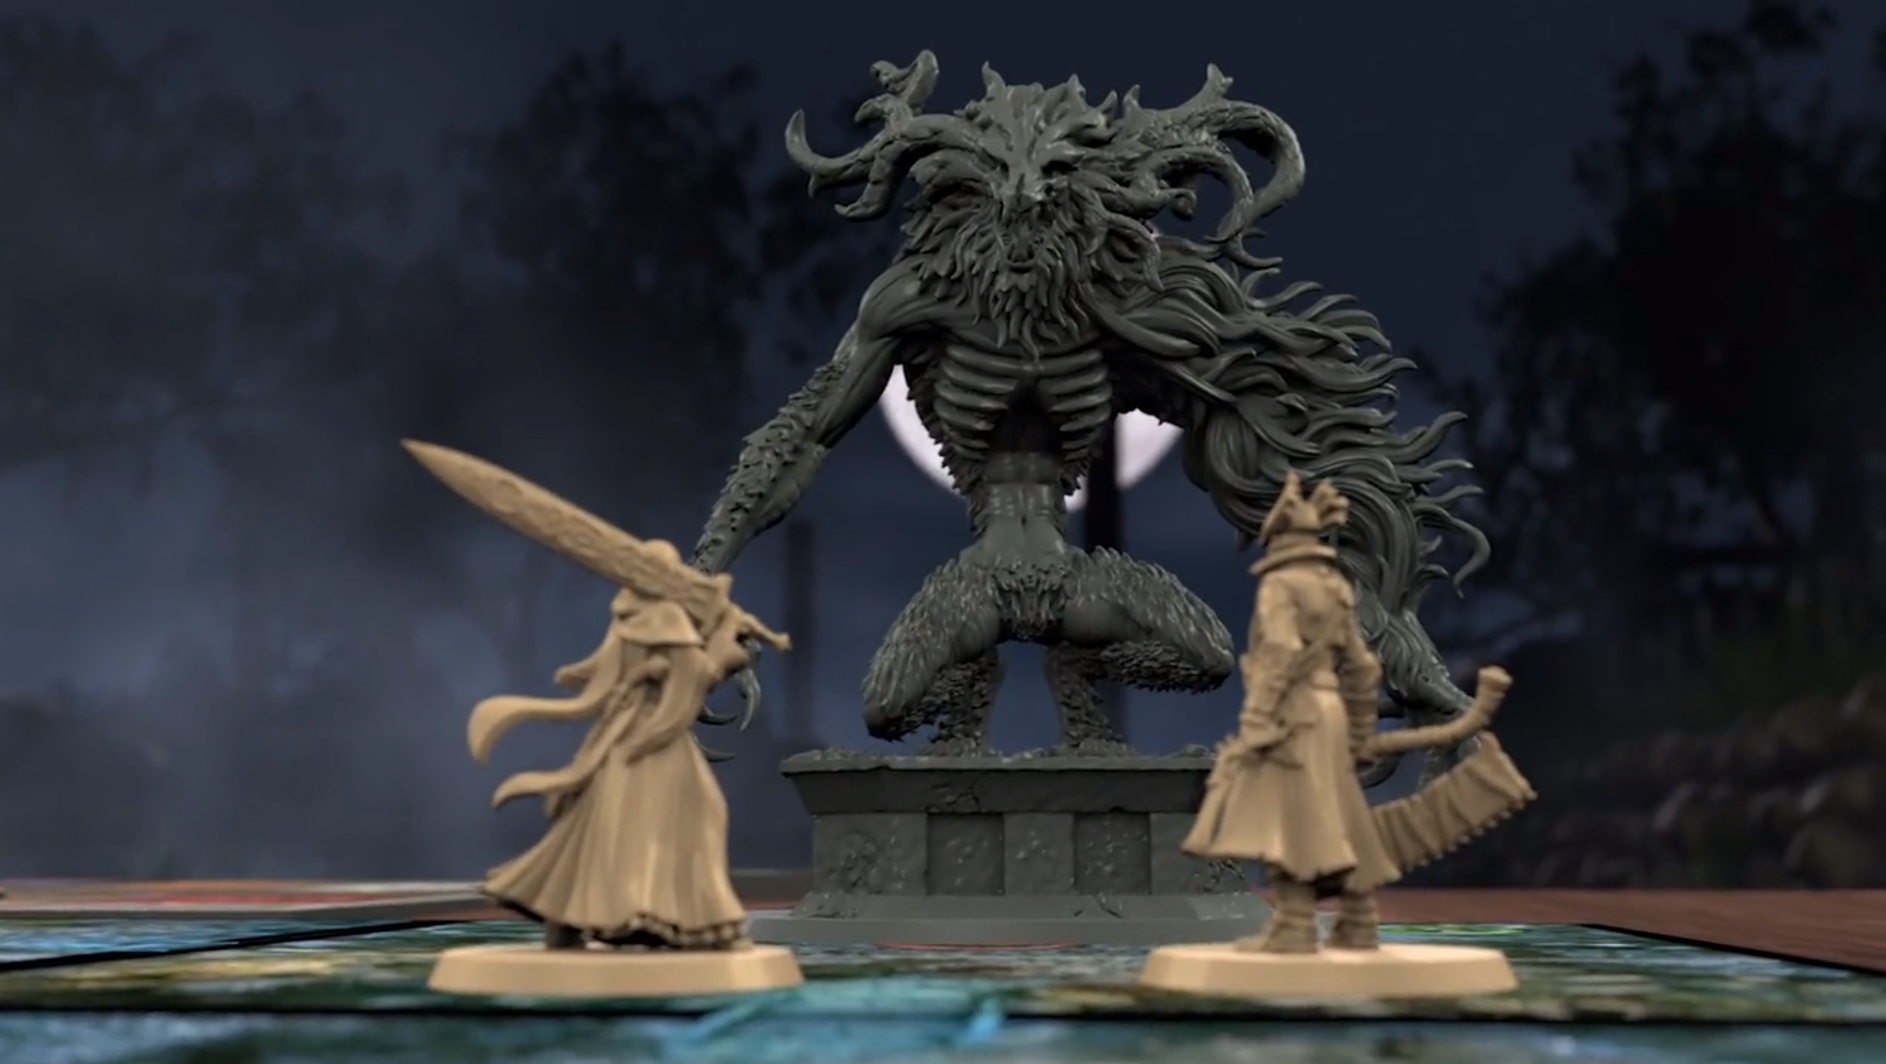 Bloodborne board game adaptation raises $1.6m in two days